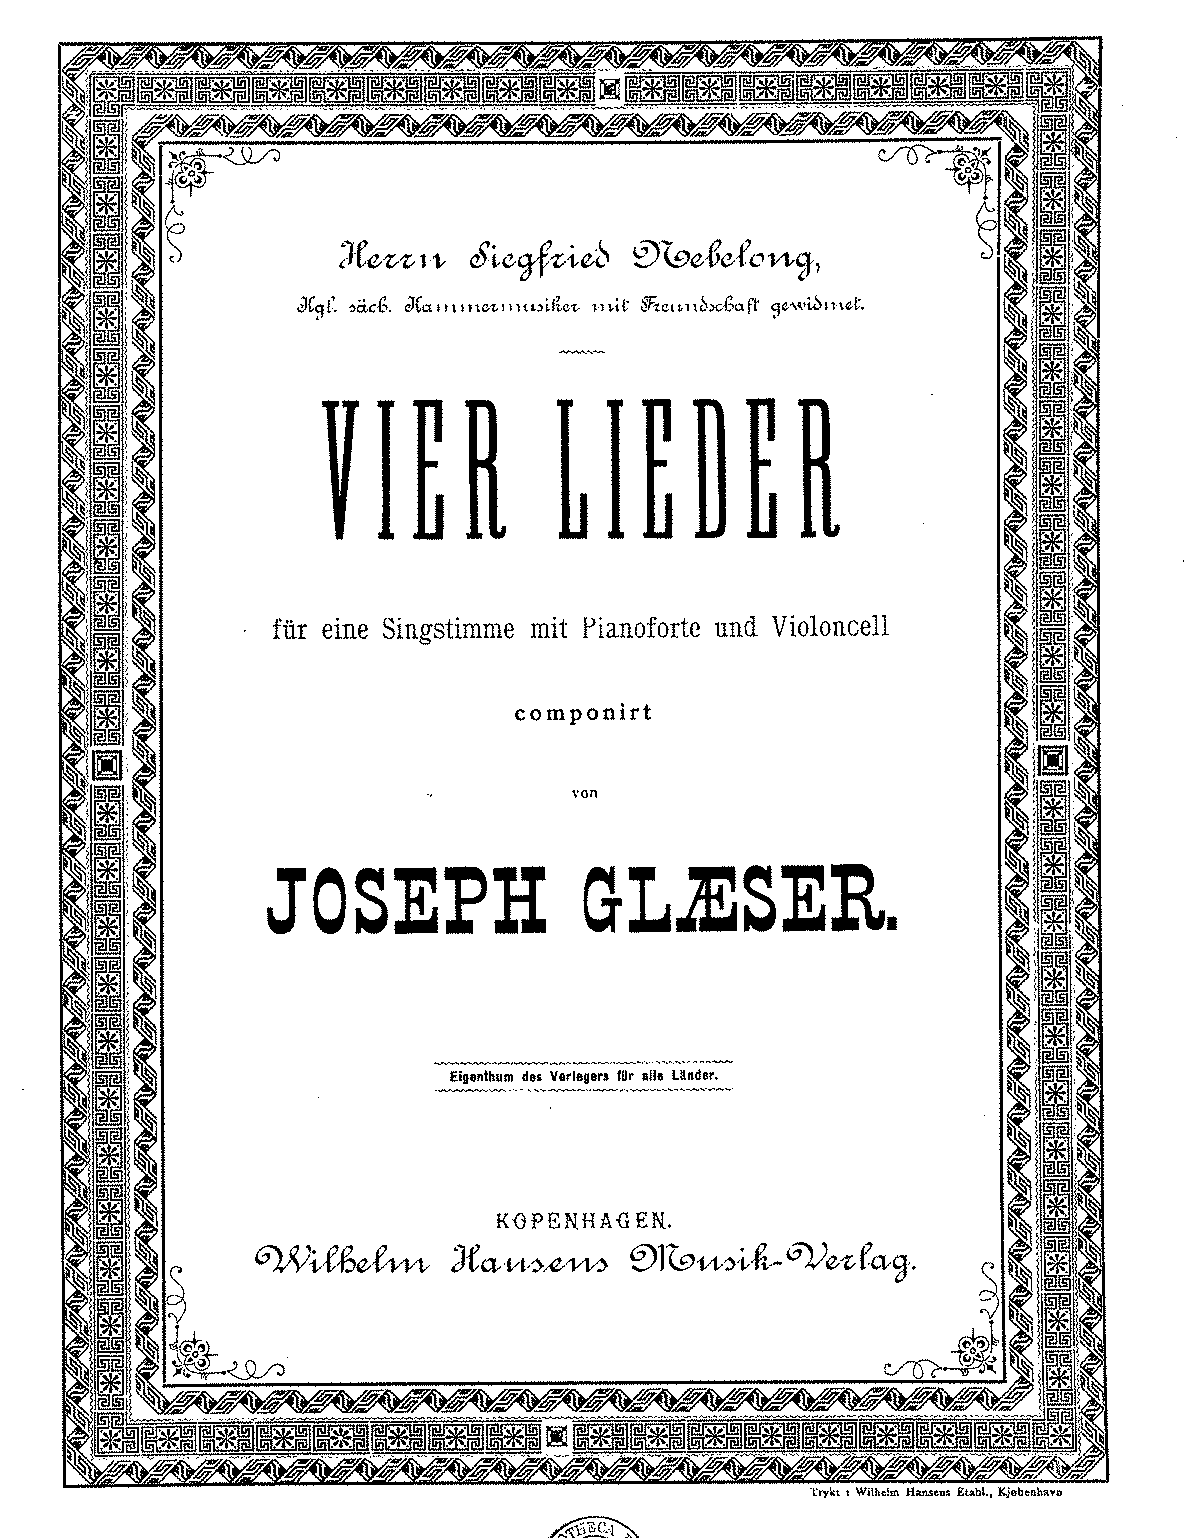 PMLP120284-Glæser - 4 Lieder for Voice Piano and Cello.pdf